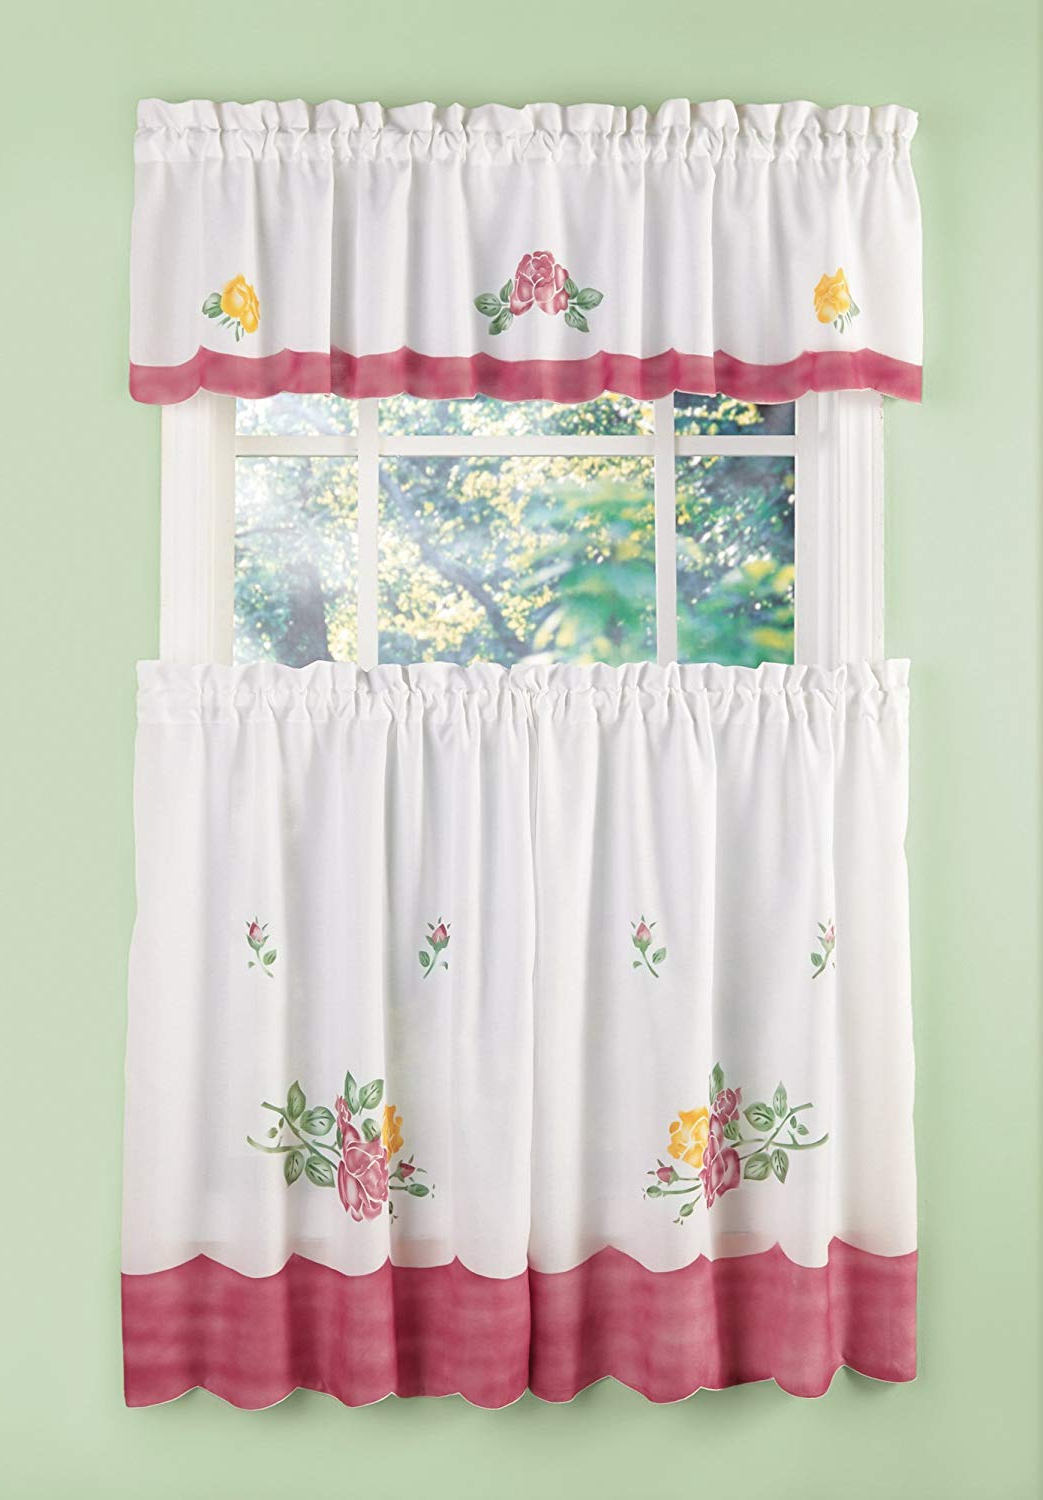 Amazon: Kitchen Curtains – Cafe Curtain Set, 3 Piece Throughout Current Coffee Embroidered Kitchen Curtain Tier Sets (View 9 of 20)